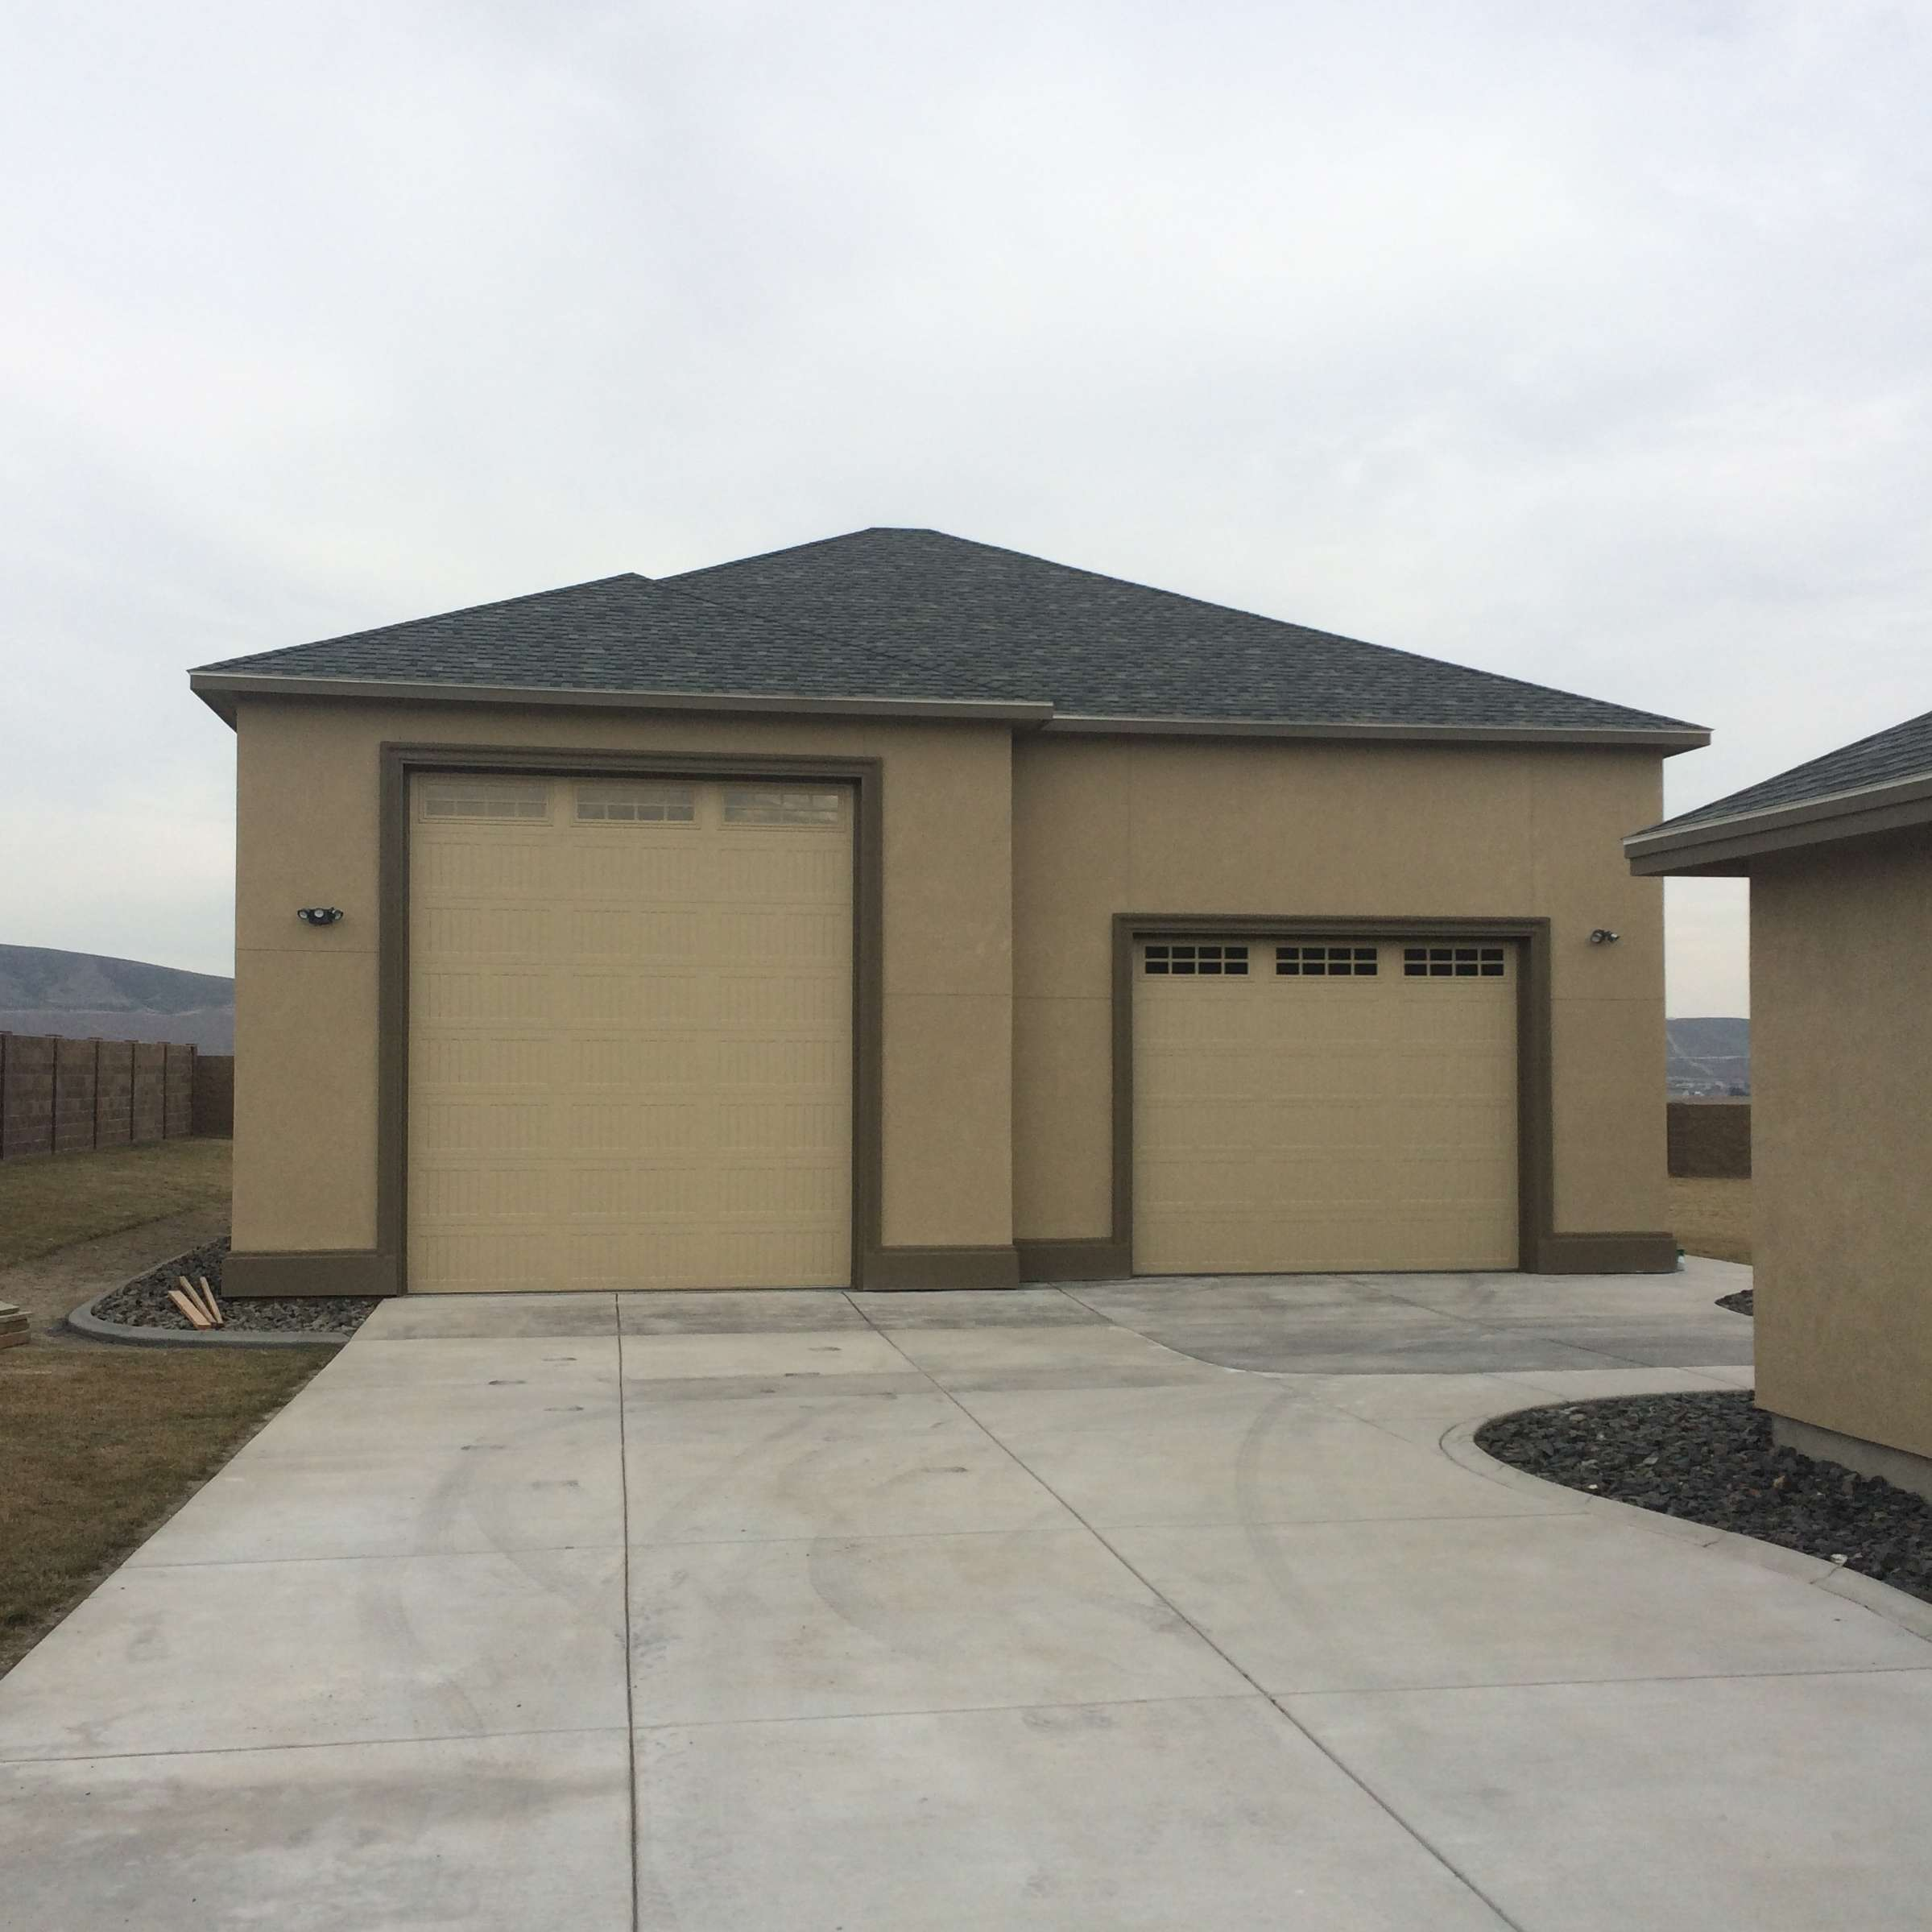 Garage Builders Tri Cities Wa General Contractor Custom Home Builder Home Remodeling